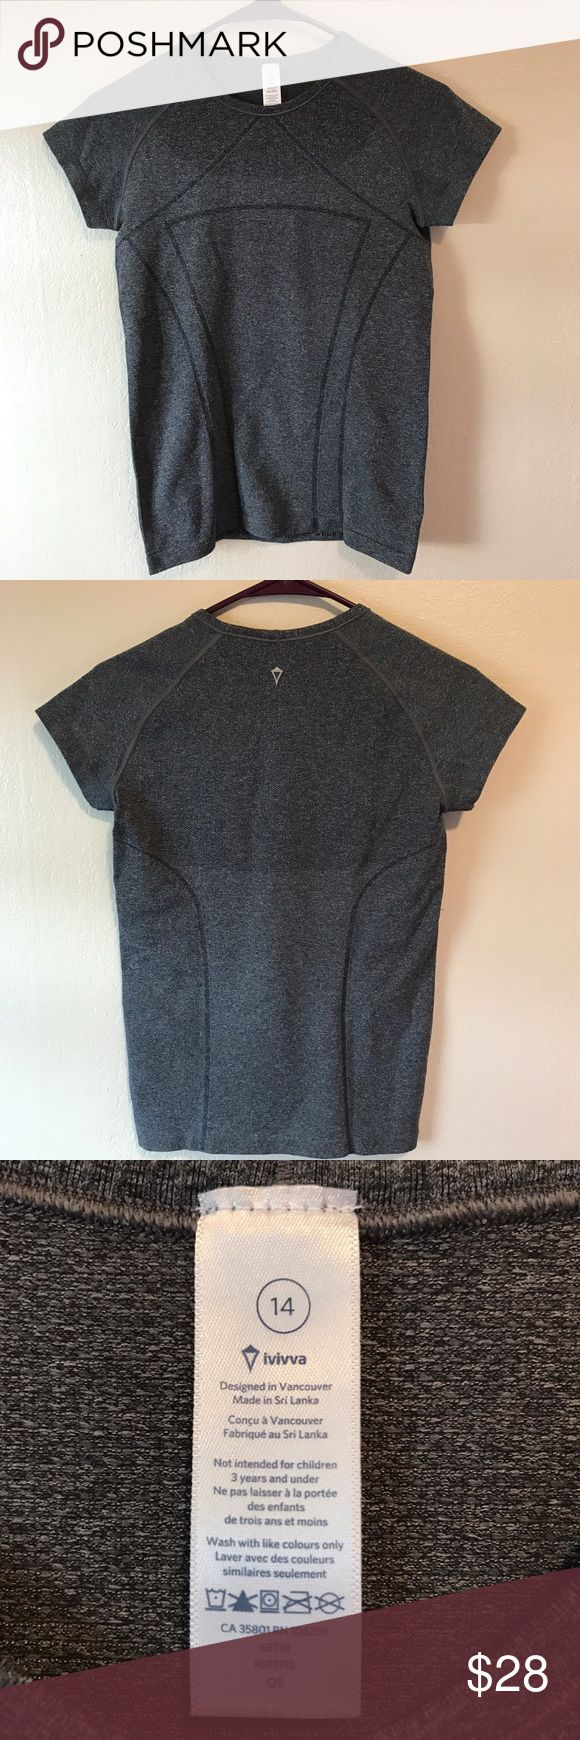 Ivivva by lululemon Grey Fly Tech Short Sleeve Tee Ivivva by lululemon grey fly Knit short sleeve tee in excellent used condition. Kids 14 should fit women's 2-4. From a smoke free, pet friendly home. Feel free to ask questions! PRODUCT DESCRIPTION: This too-cool tee features mesh ventilation and Silverescent® technology for a practice-ready piece that stays cool and clean.  Features  Silverescent® technology powered by X-STATIC ® inhibits the growth of odor-causing bacteria  Classic fit…